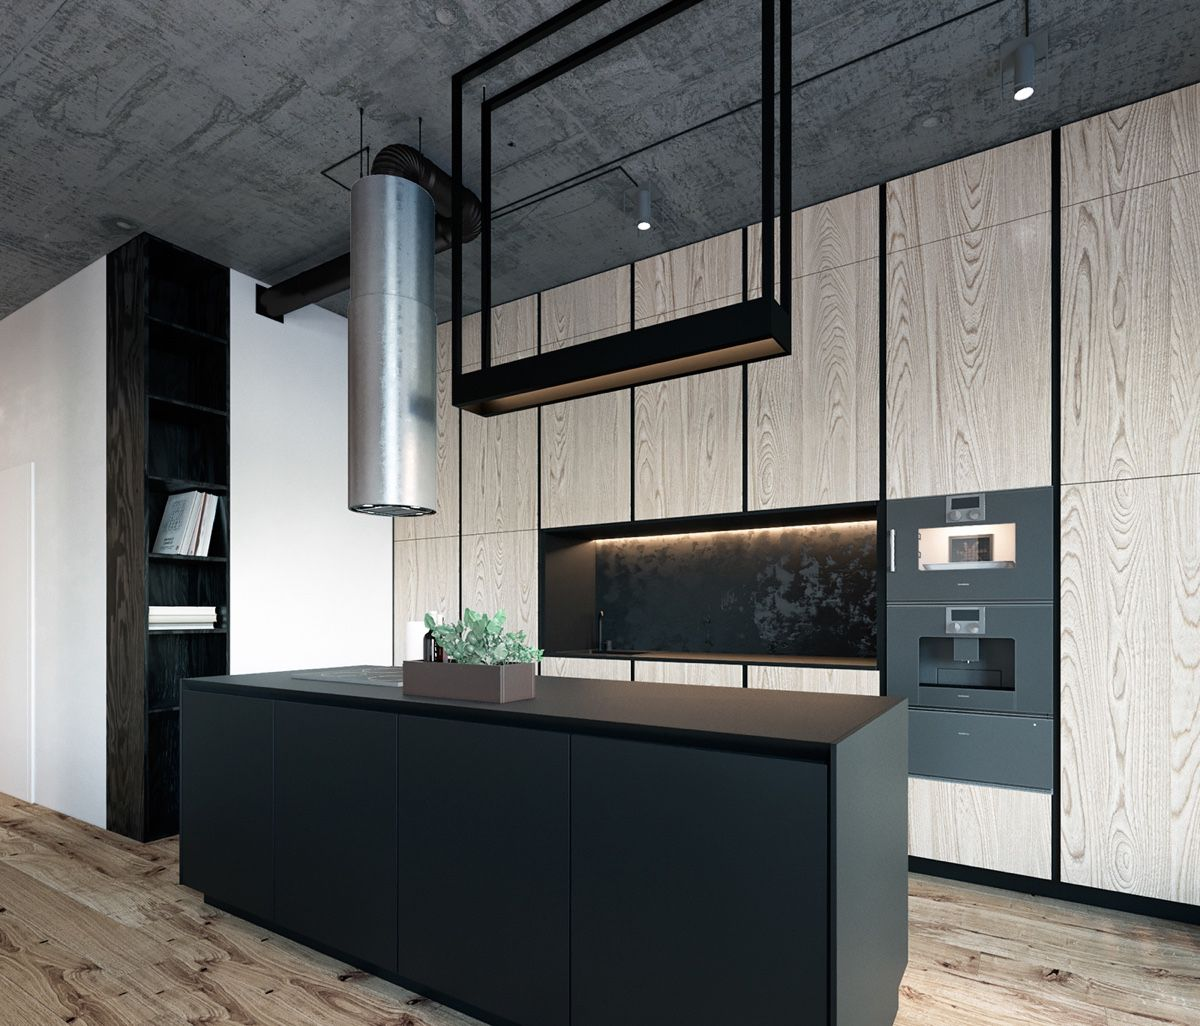 Bachelor Pad Kitchen Long Metal Cylindrical Fan Wide Wooden Kitchen Cabinetry - Find greyspiration in 3 sophisticated modern grey spaces